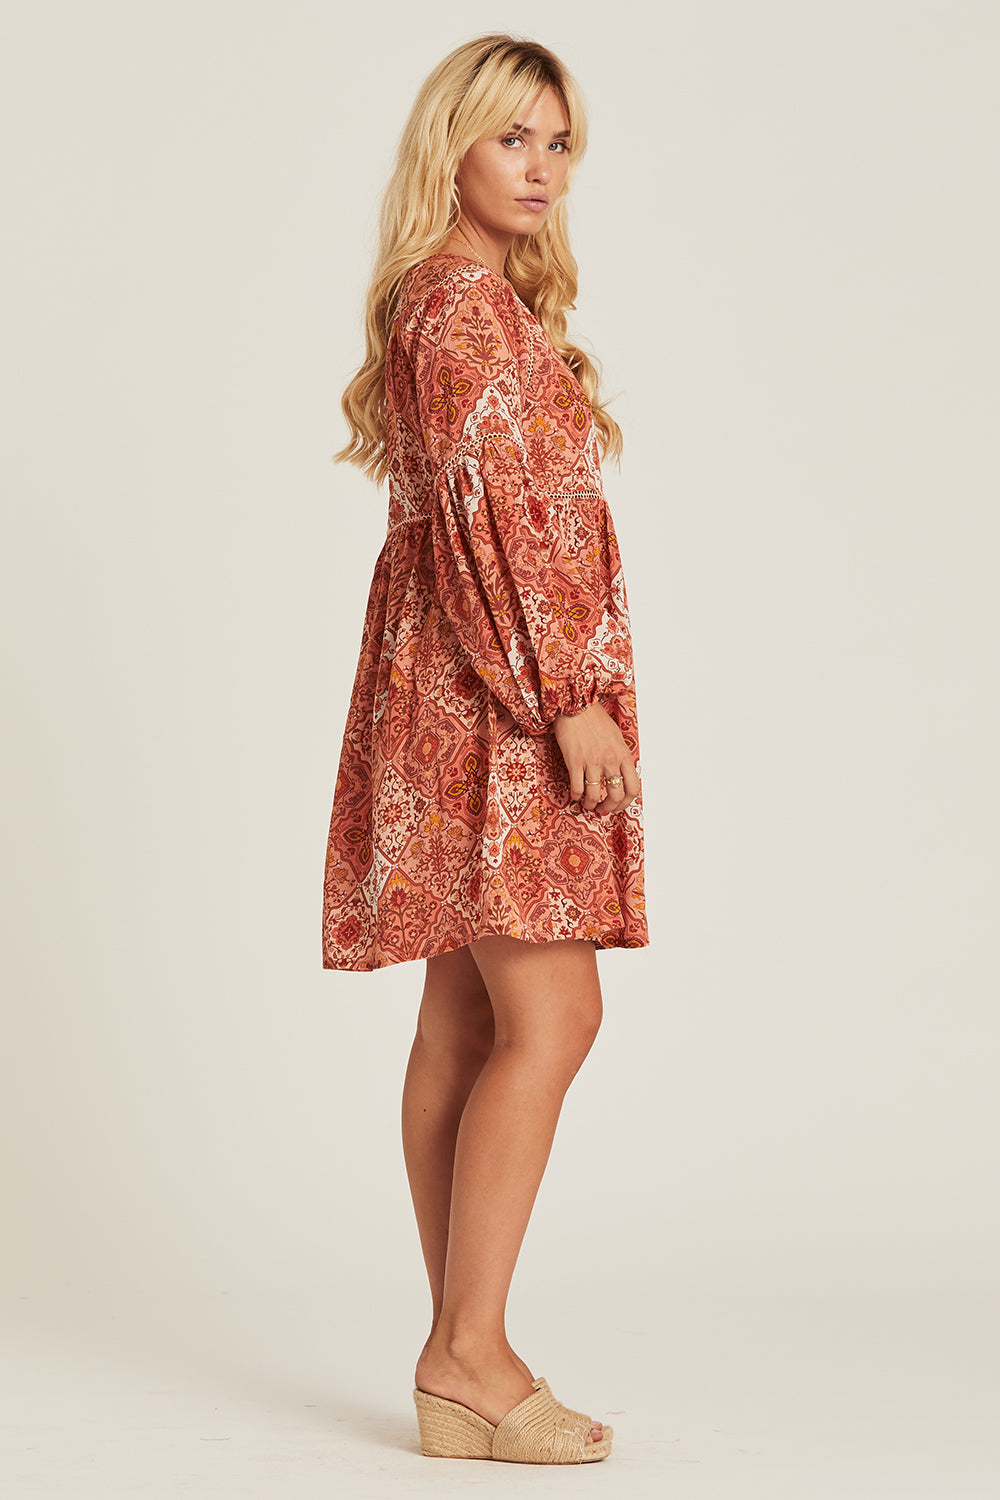 Zephyr Mini Dress in Rhubarb